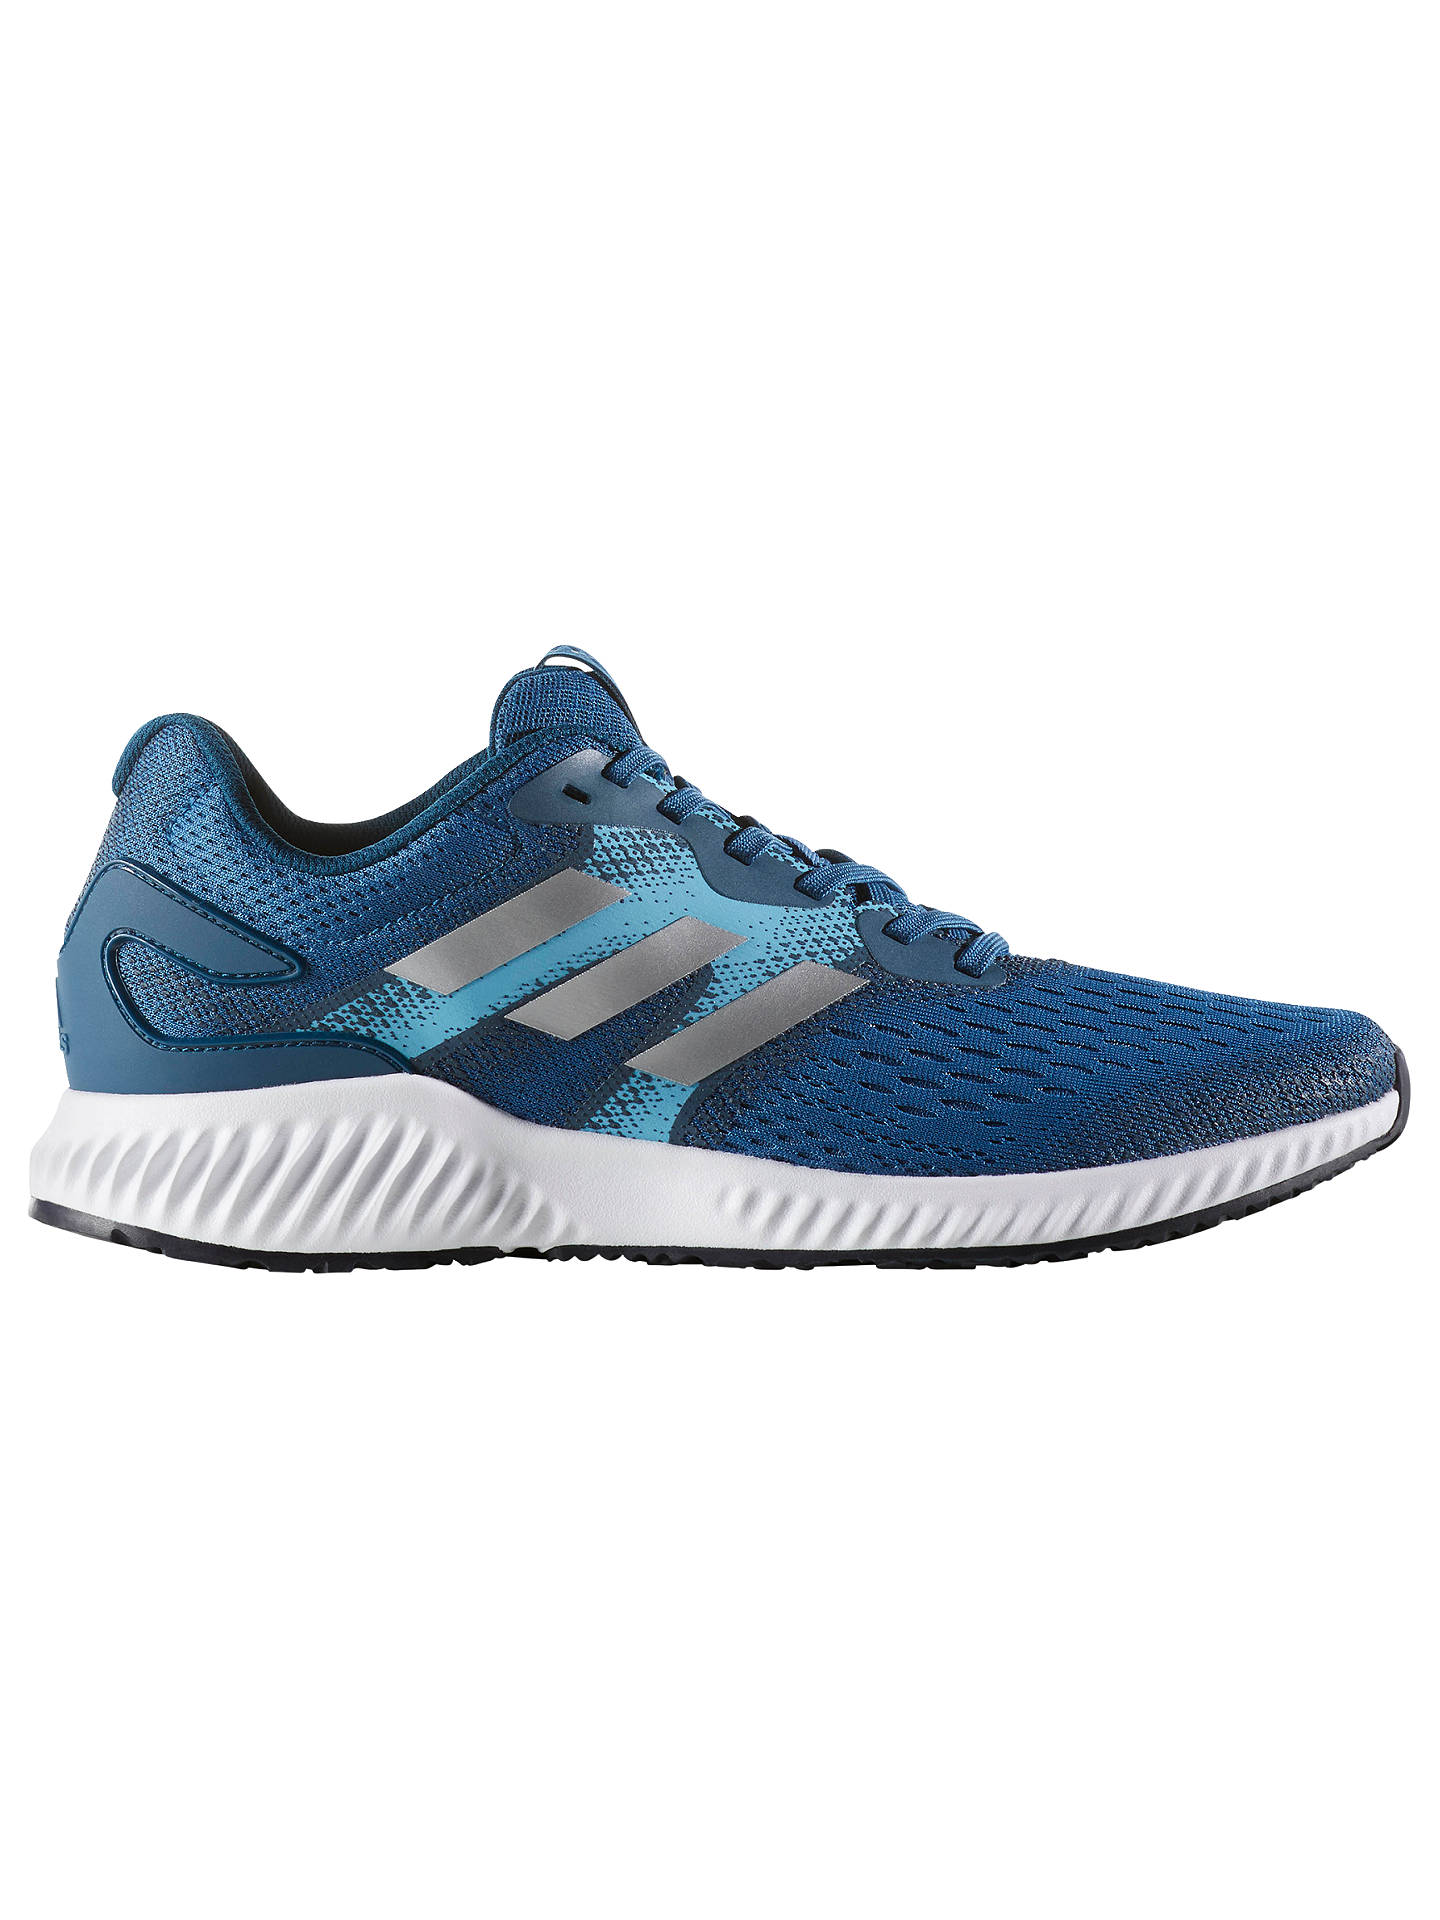 new style d2bf3 2c7b4 Buyadidas Aerobounce Mens Running Shoes, Blue, Blue, 7 Online at  johnlewis. ...